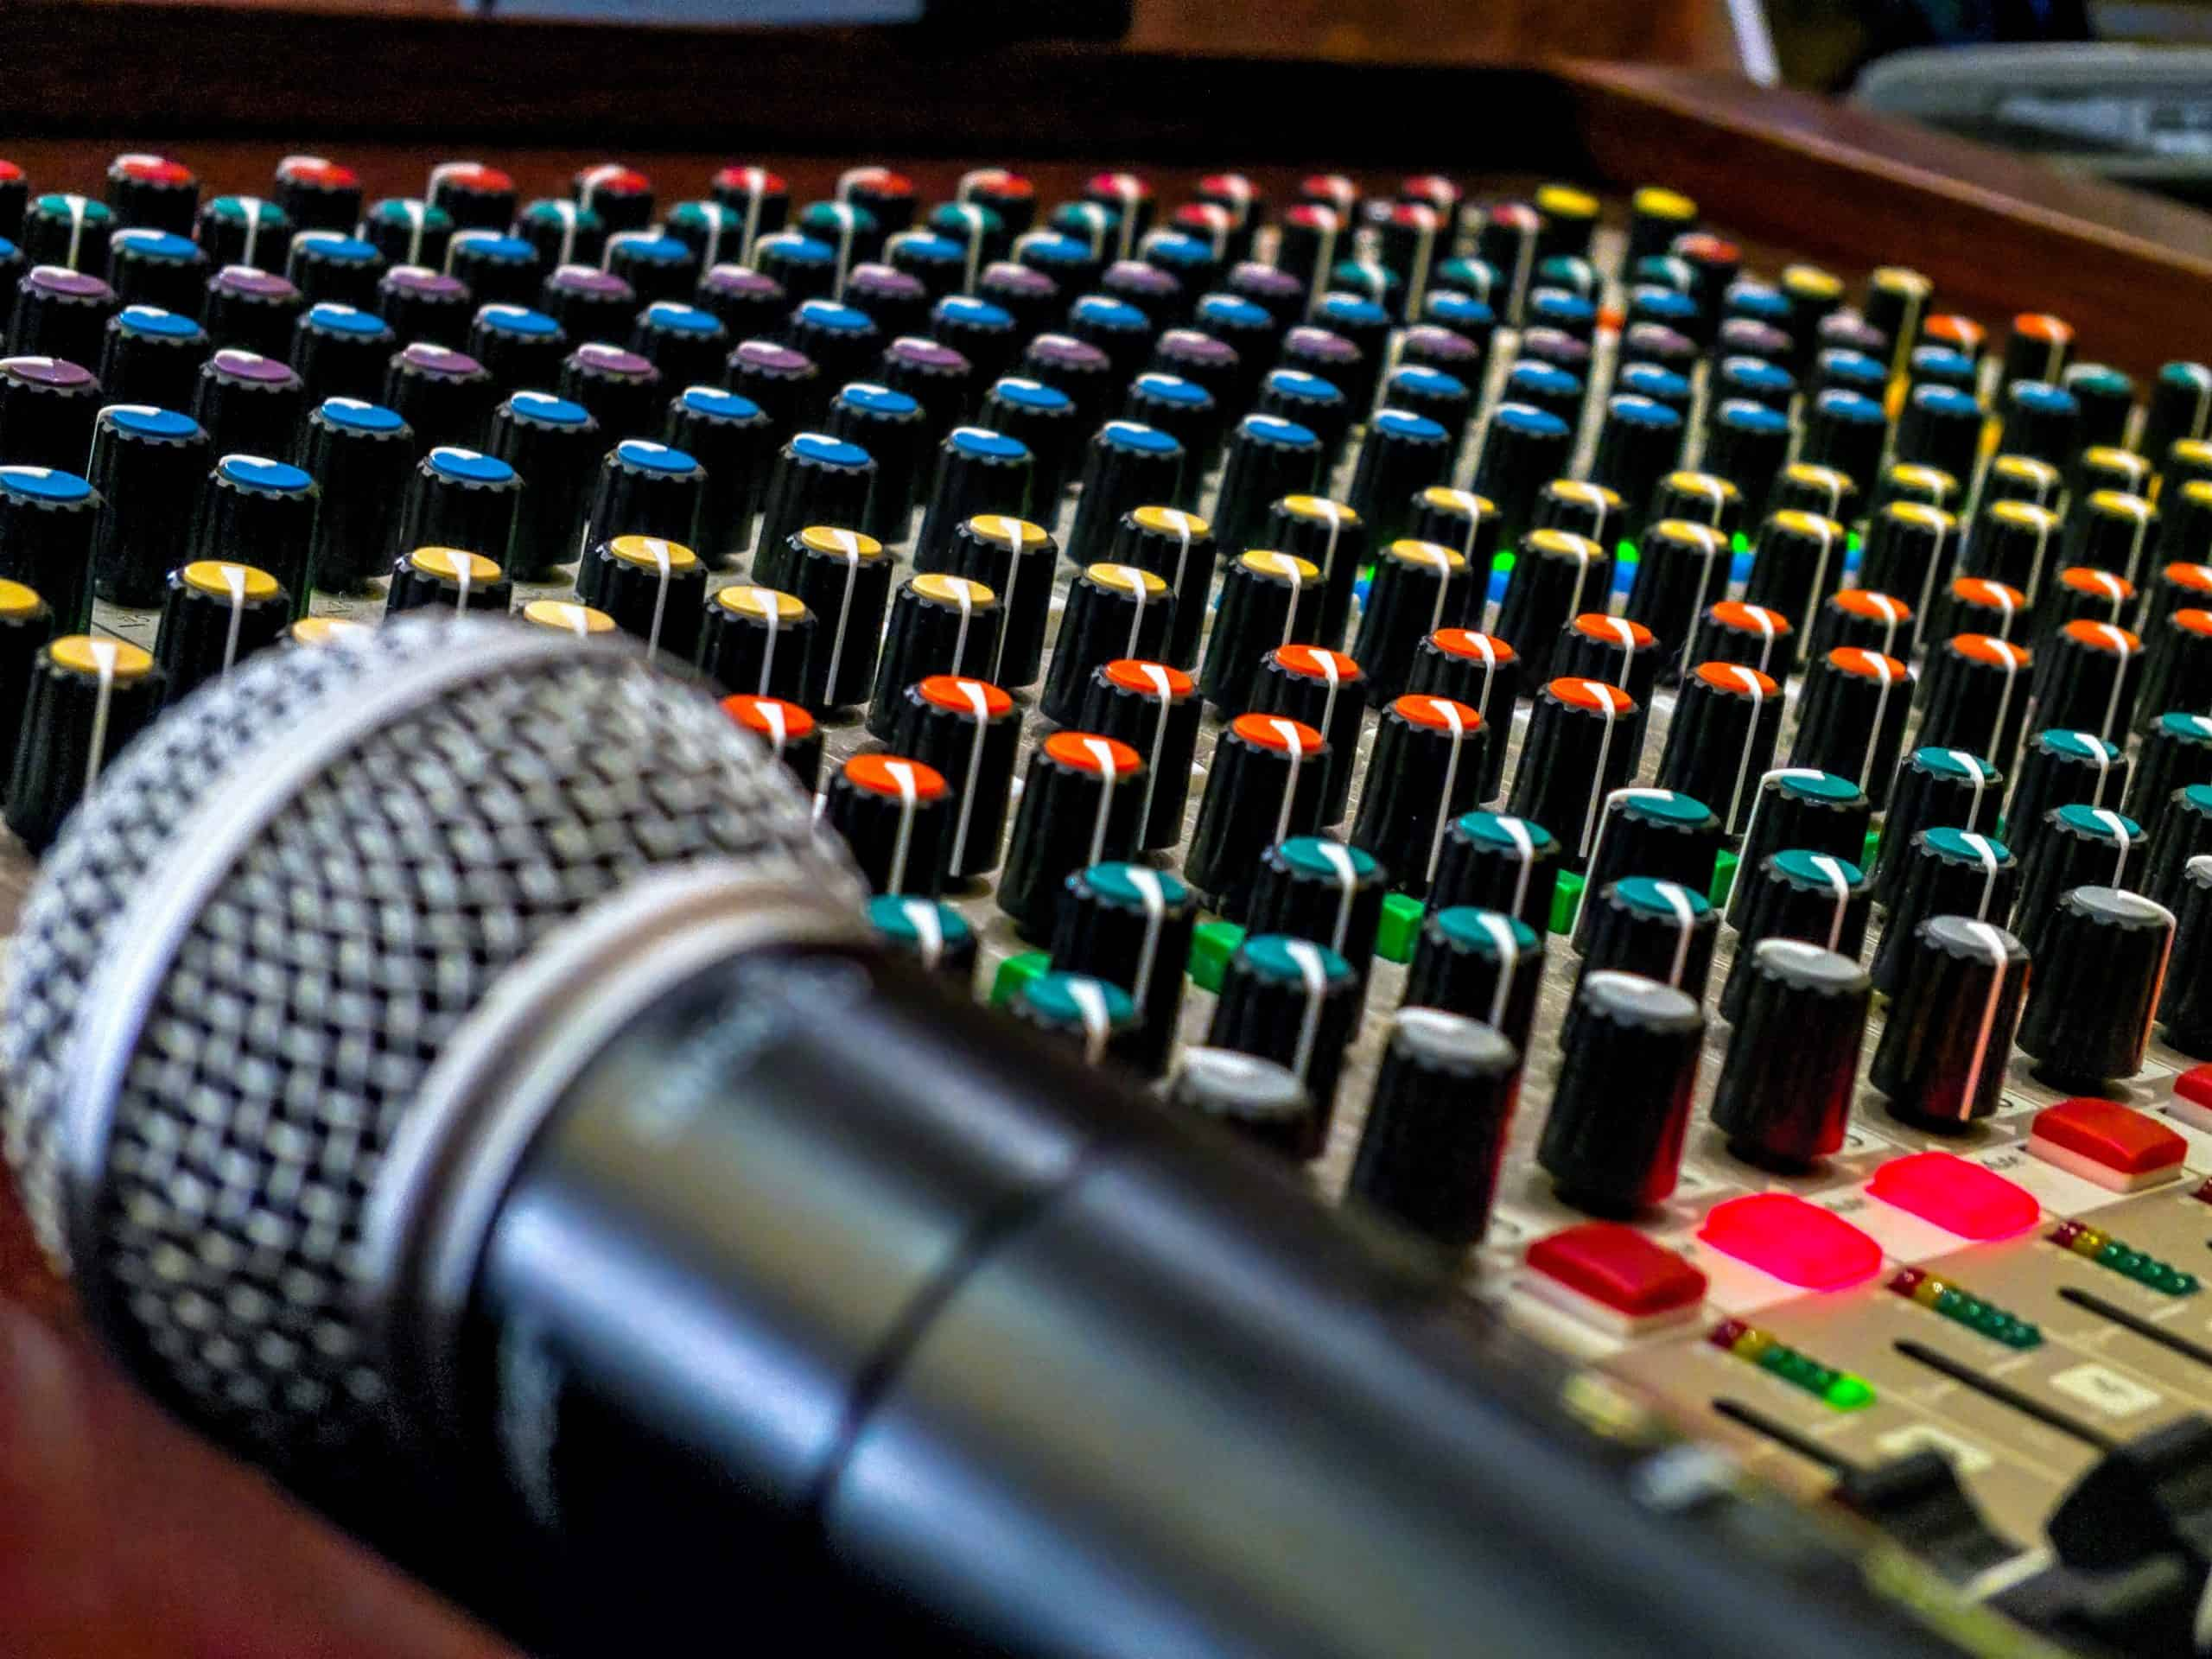 A microphone rests on a live sound mixing board containing colorful knobs.